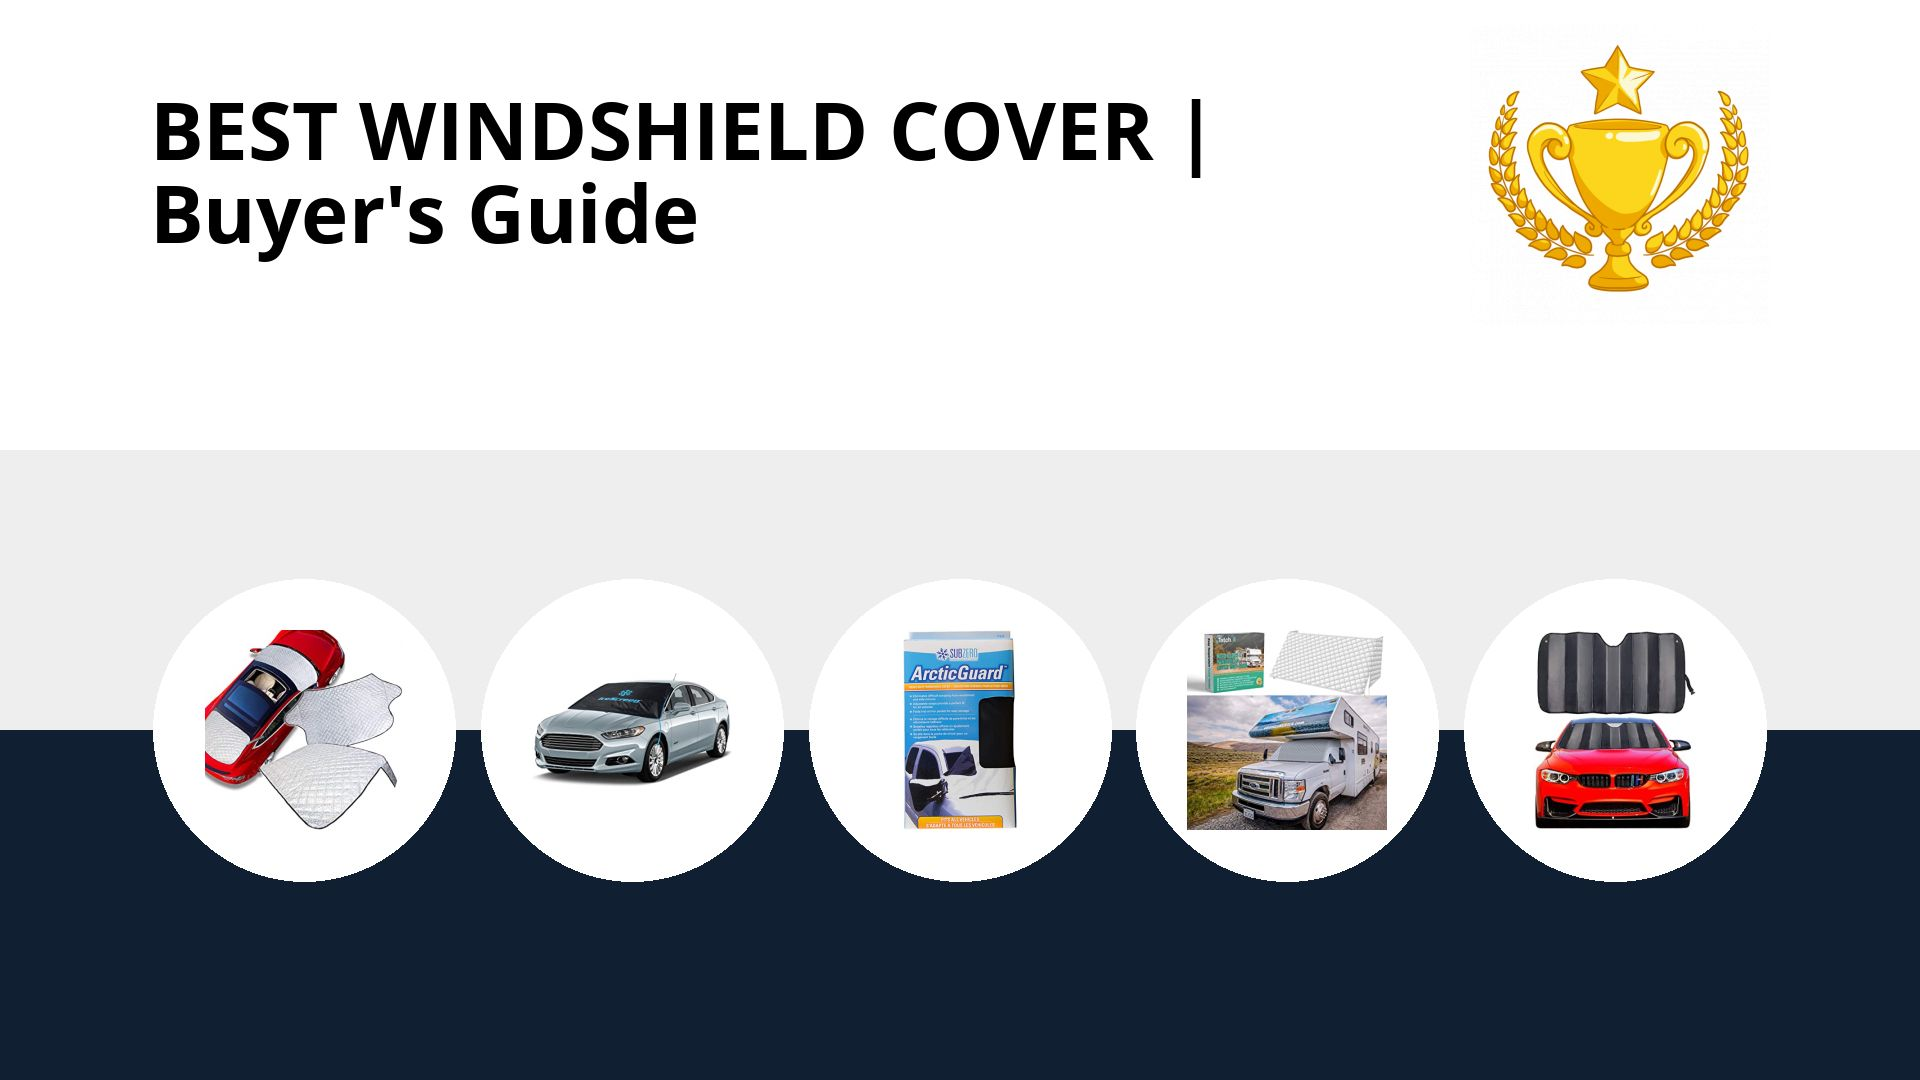 Best Windshield Cover: image